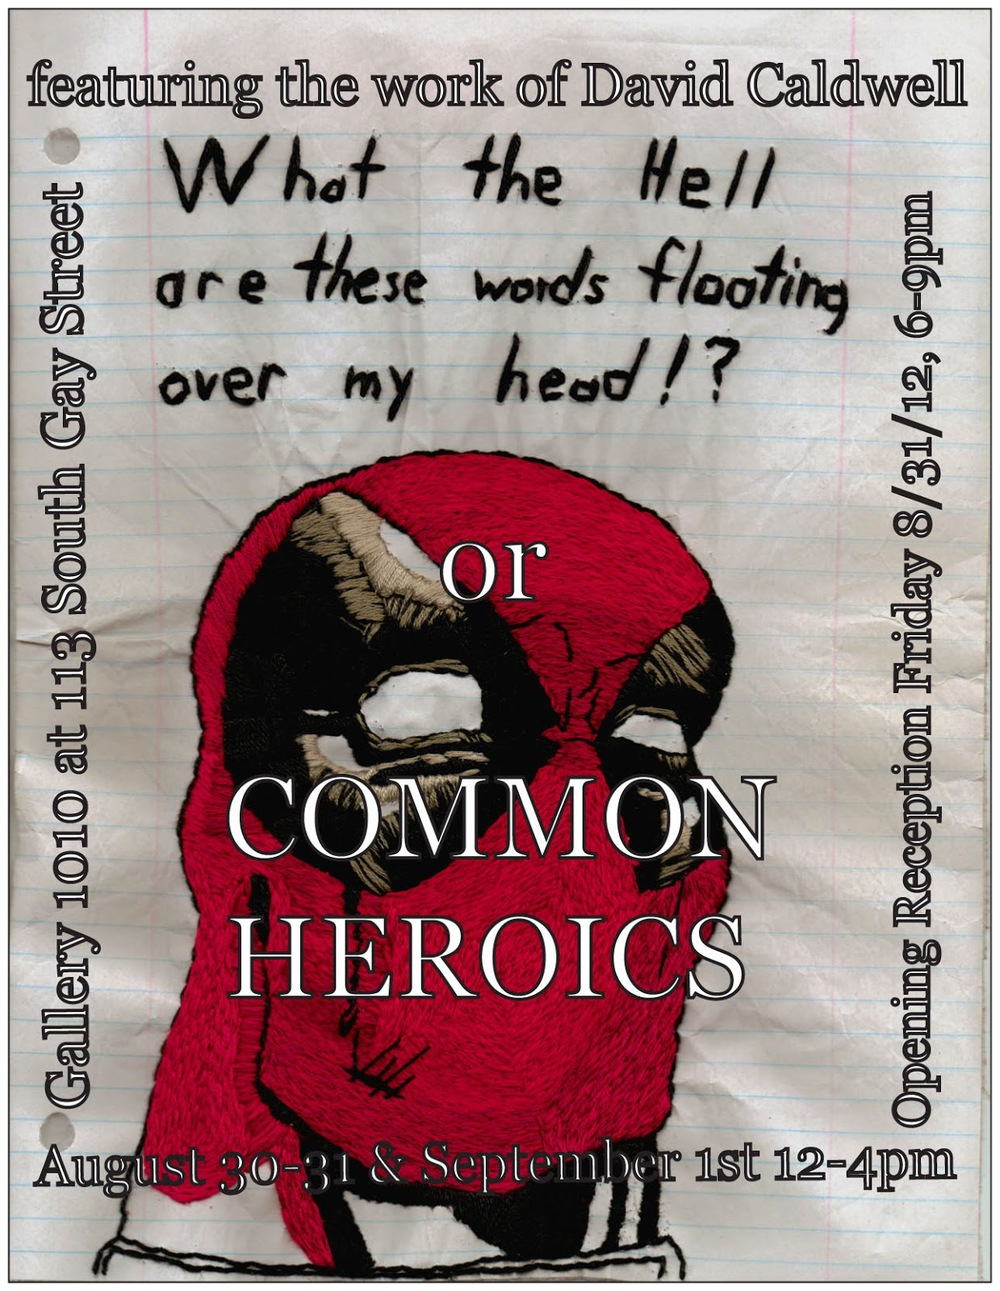 Post card from the solo show Common Heroics.